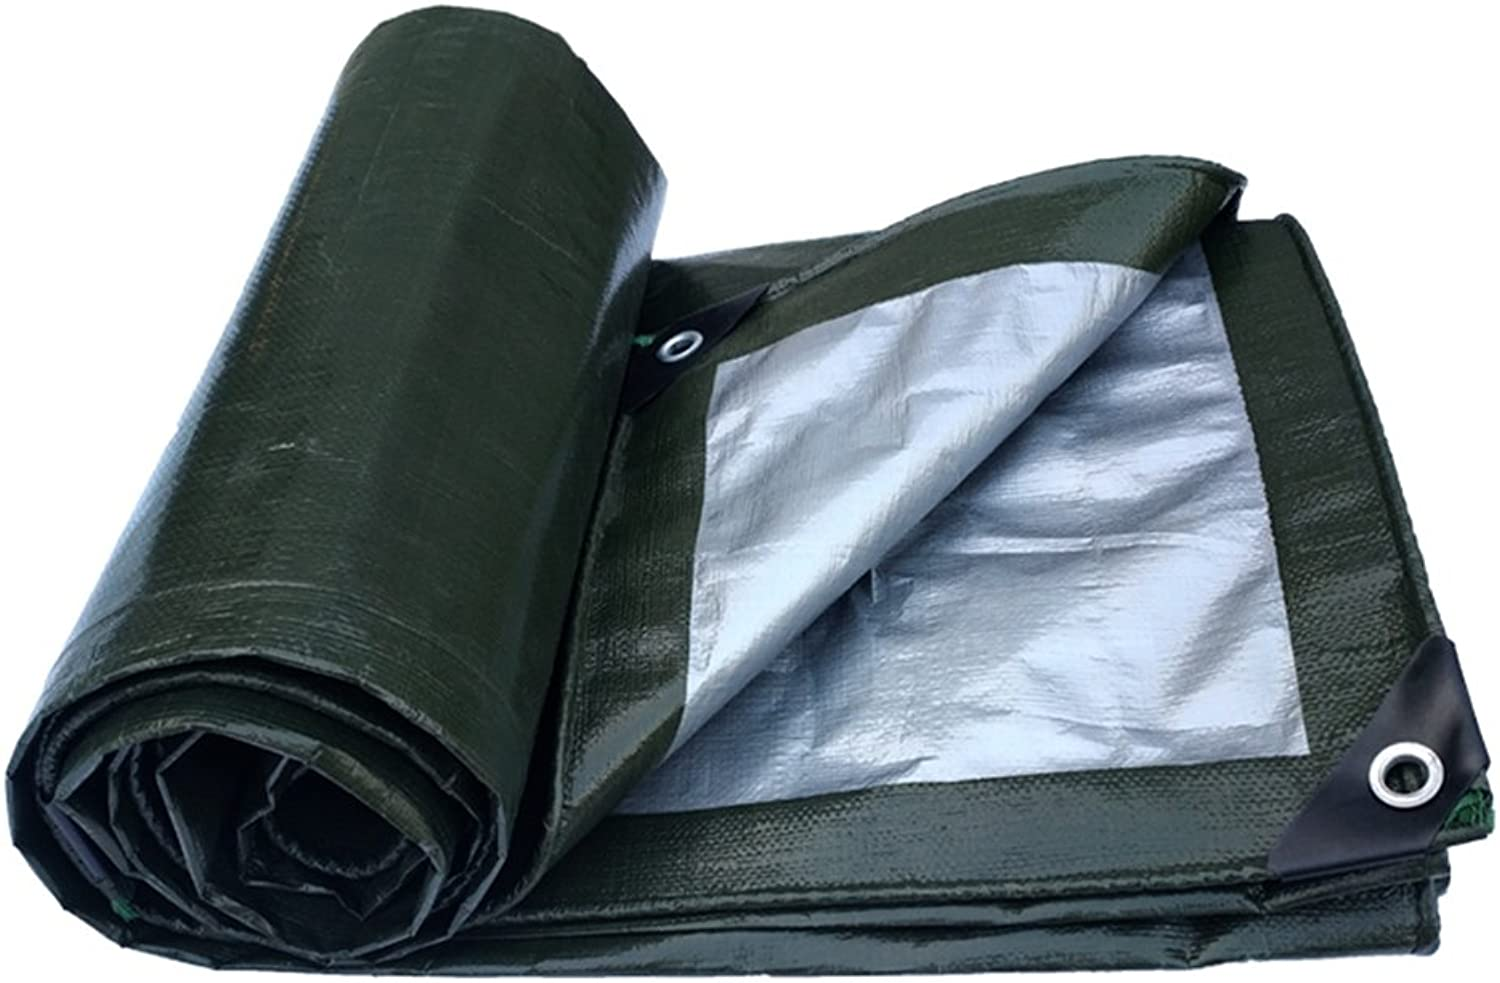 ParksonTents Tarpaulin, Thick Outdoor Waterproof Canopy Sunscreen AntiOxidation Truck Gardening Cover Cloth  Military Green Silver ++